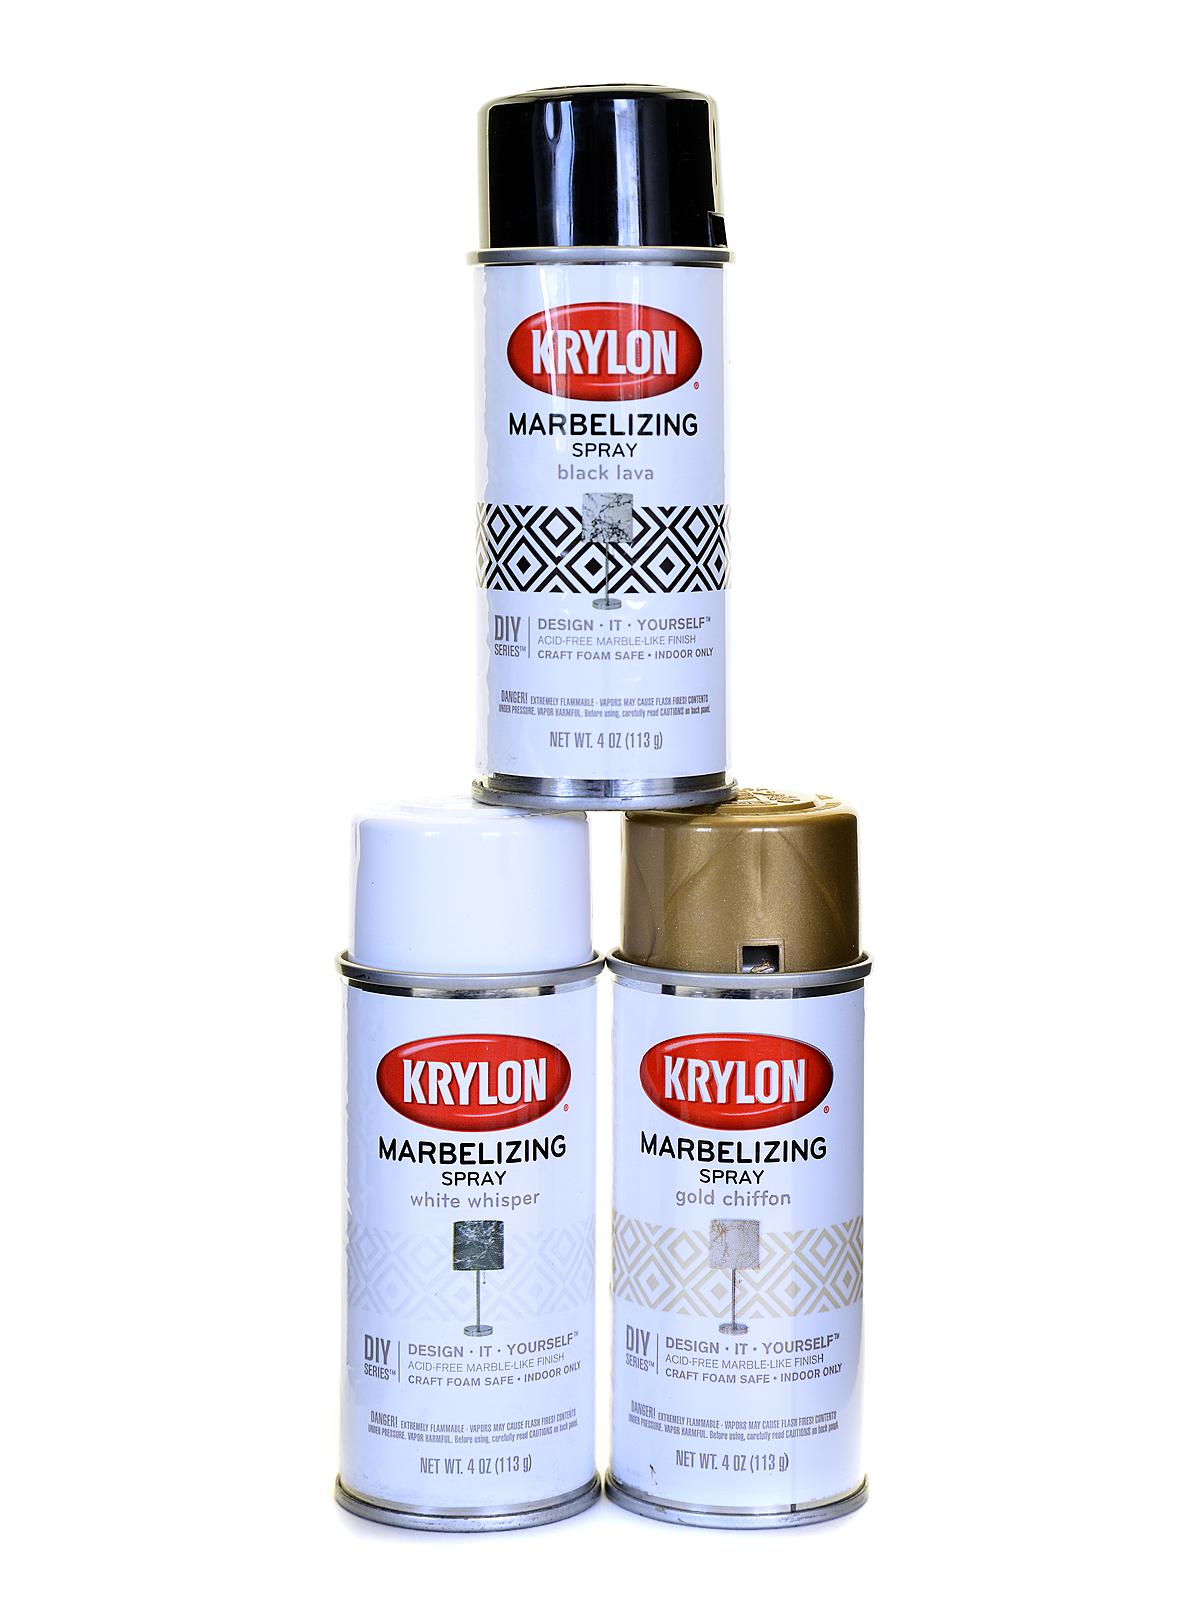 Krylon Marbelizing Spray